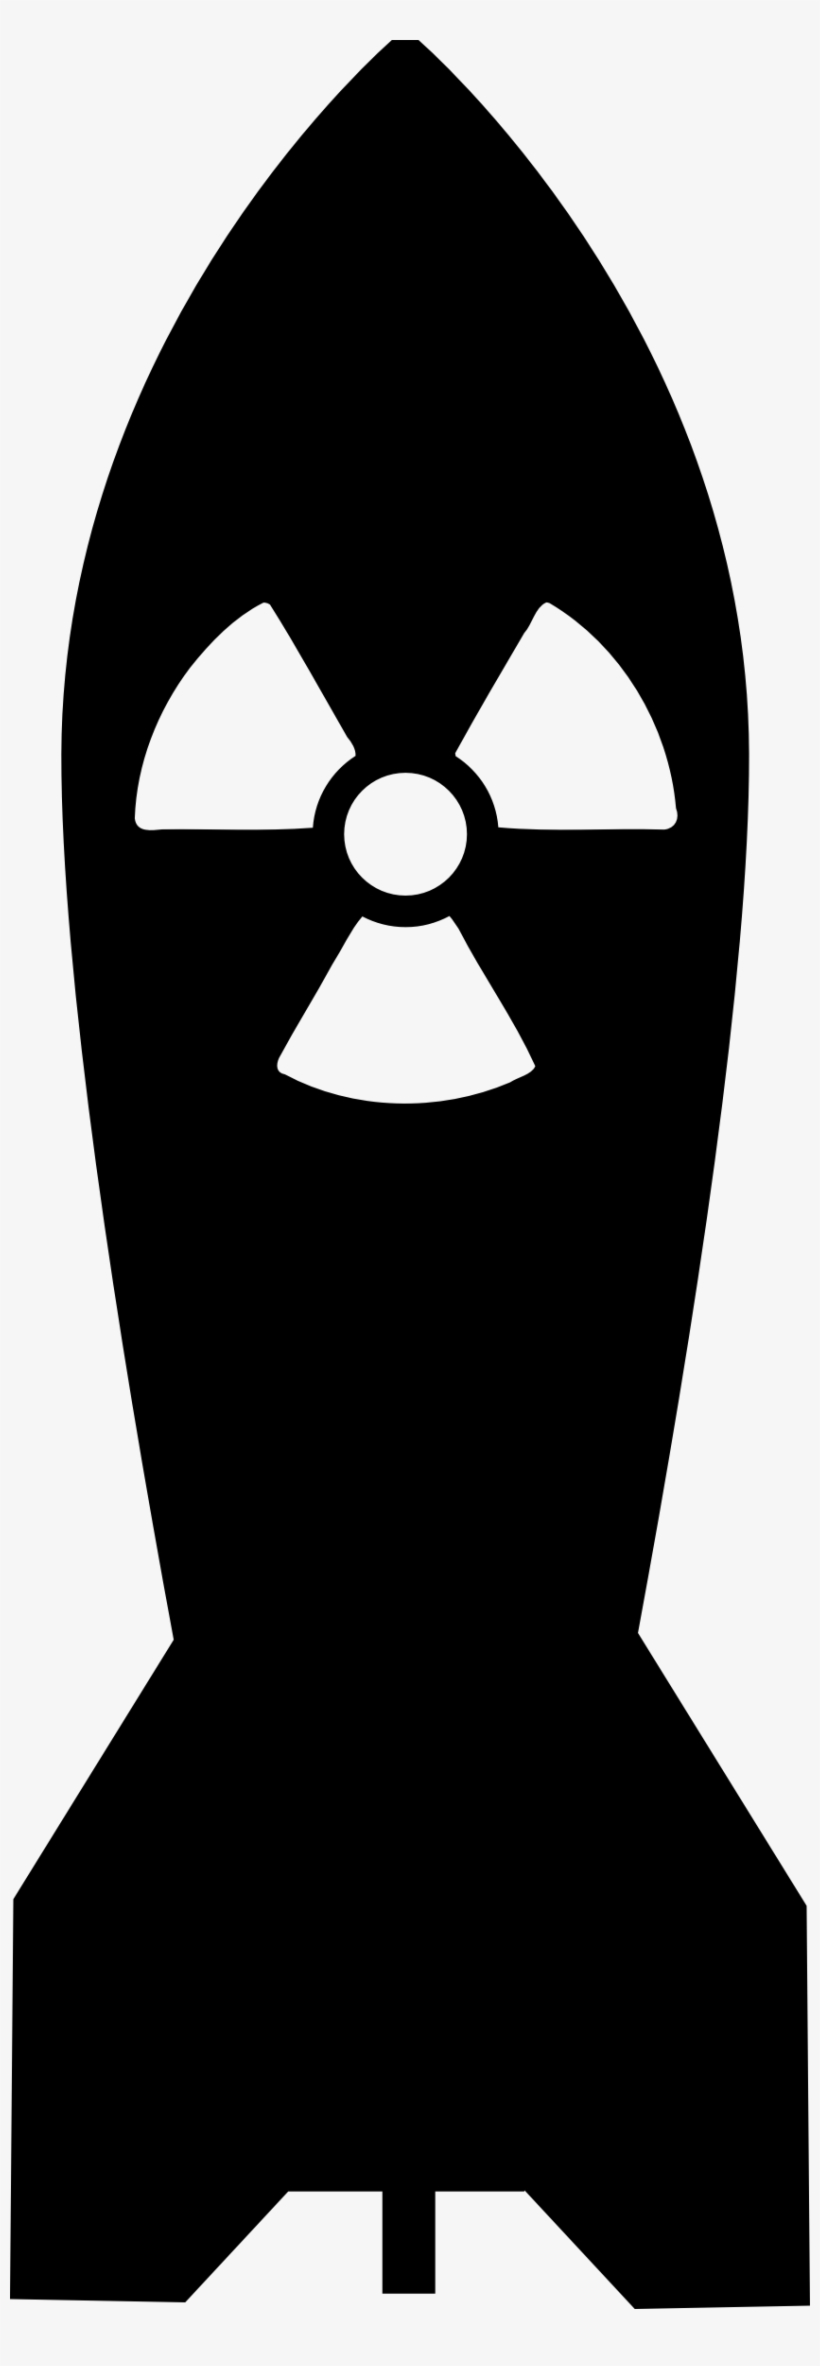 Bomb clipart atomic bomb. Png images cliparts free